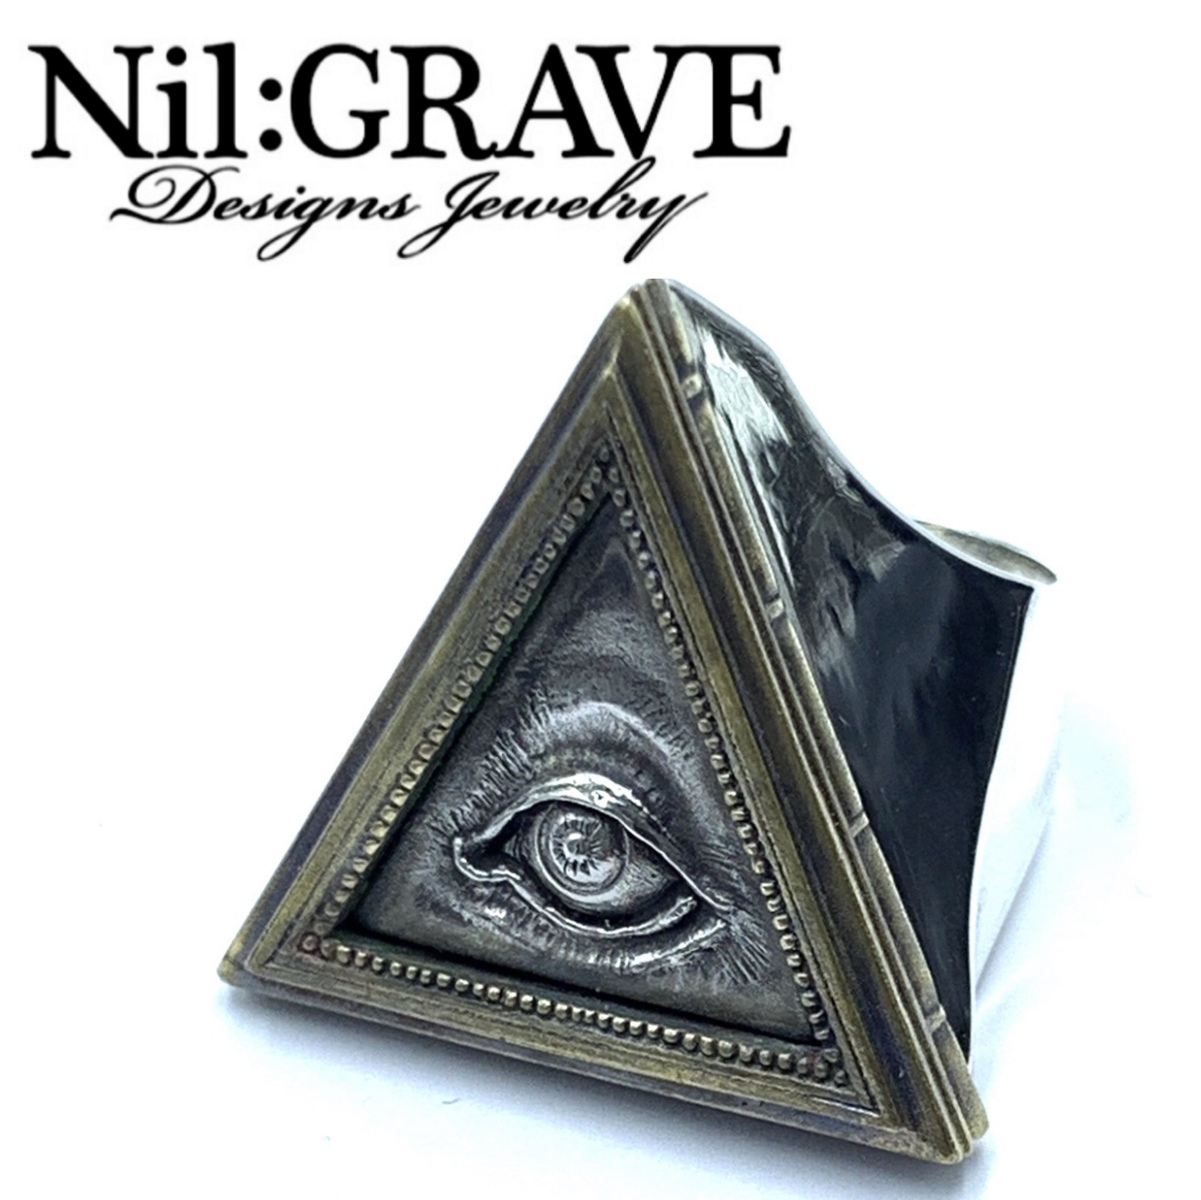 Nil:GRAVE Designs Jewelry/ニルグレイヴ デザインズジュエリー三角トリロジーリング2